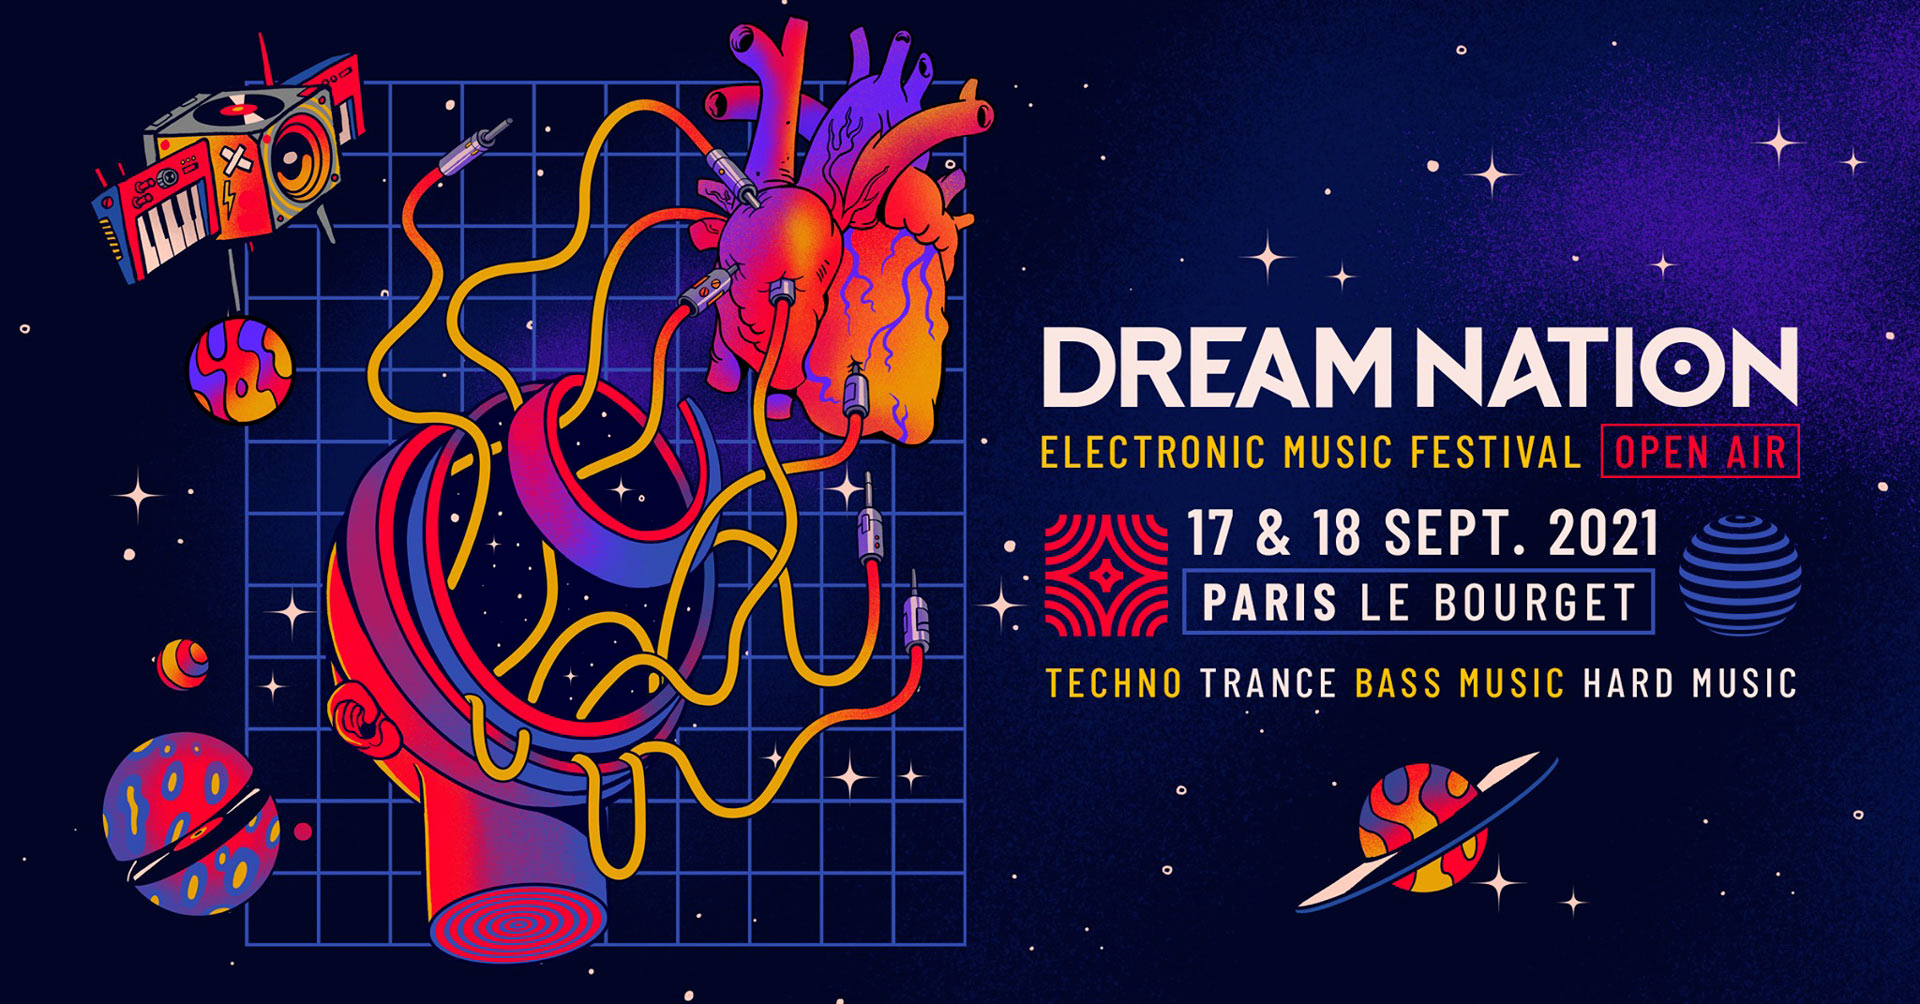 Get a chance to experience Dream Nation Festival Open Air!